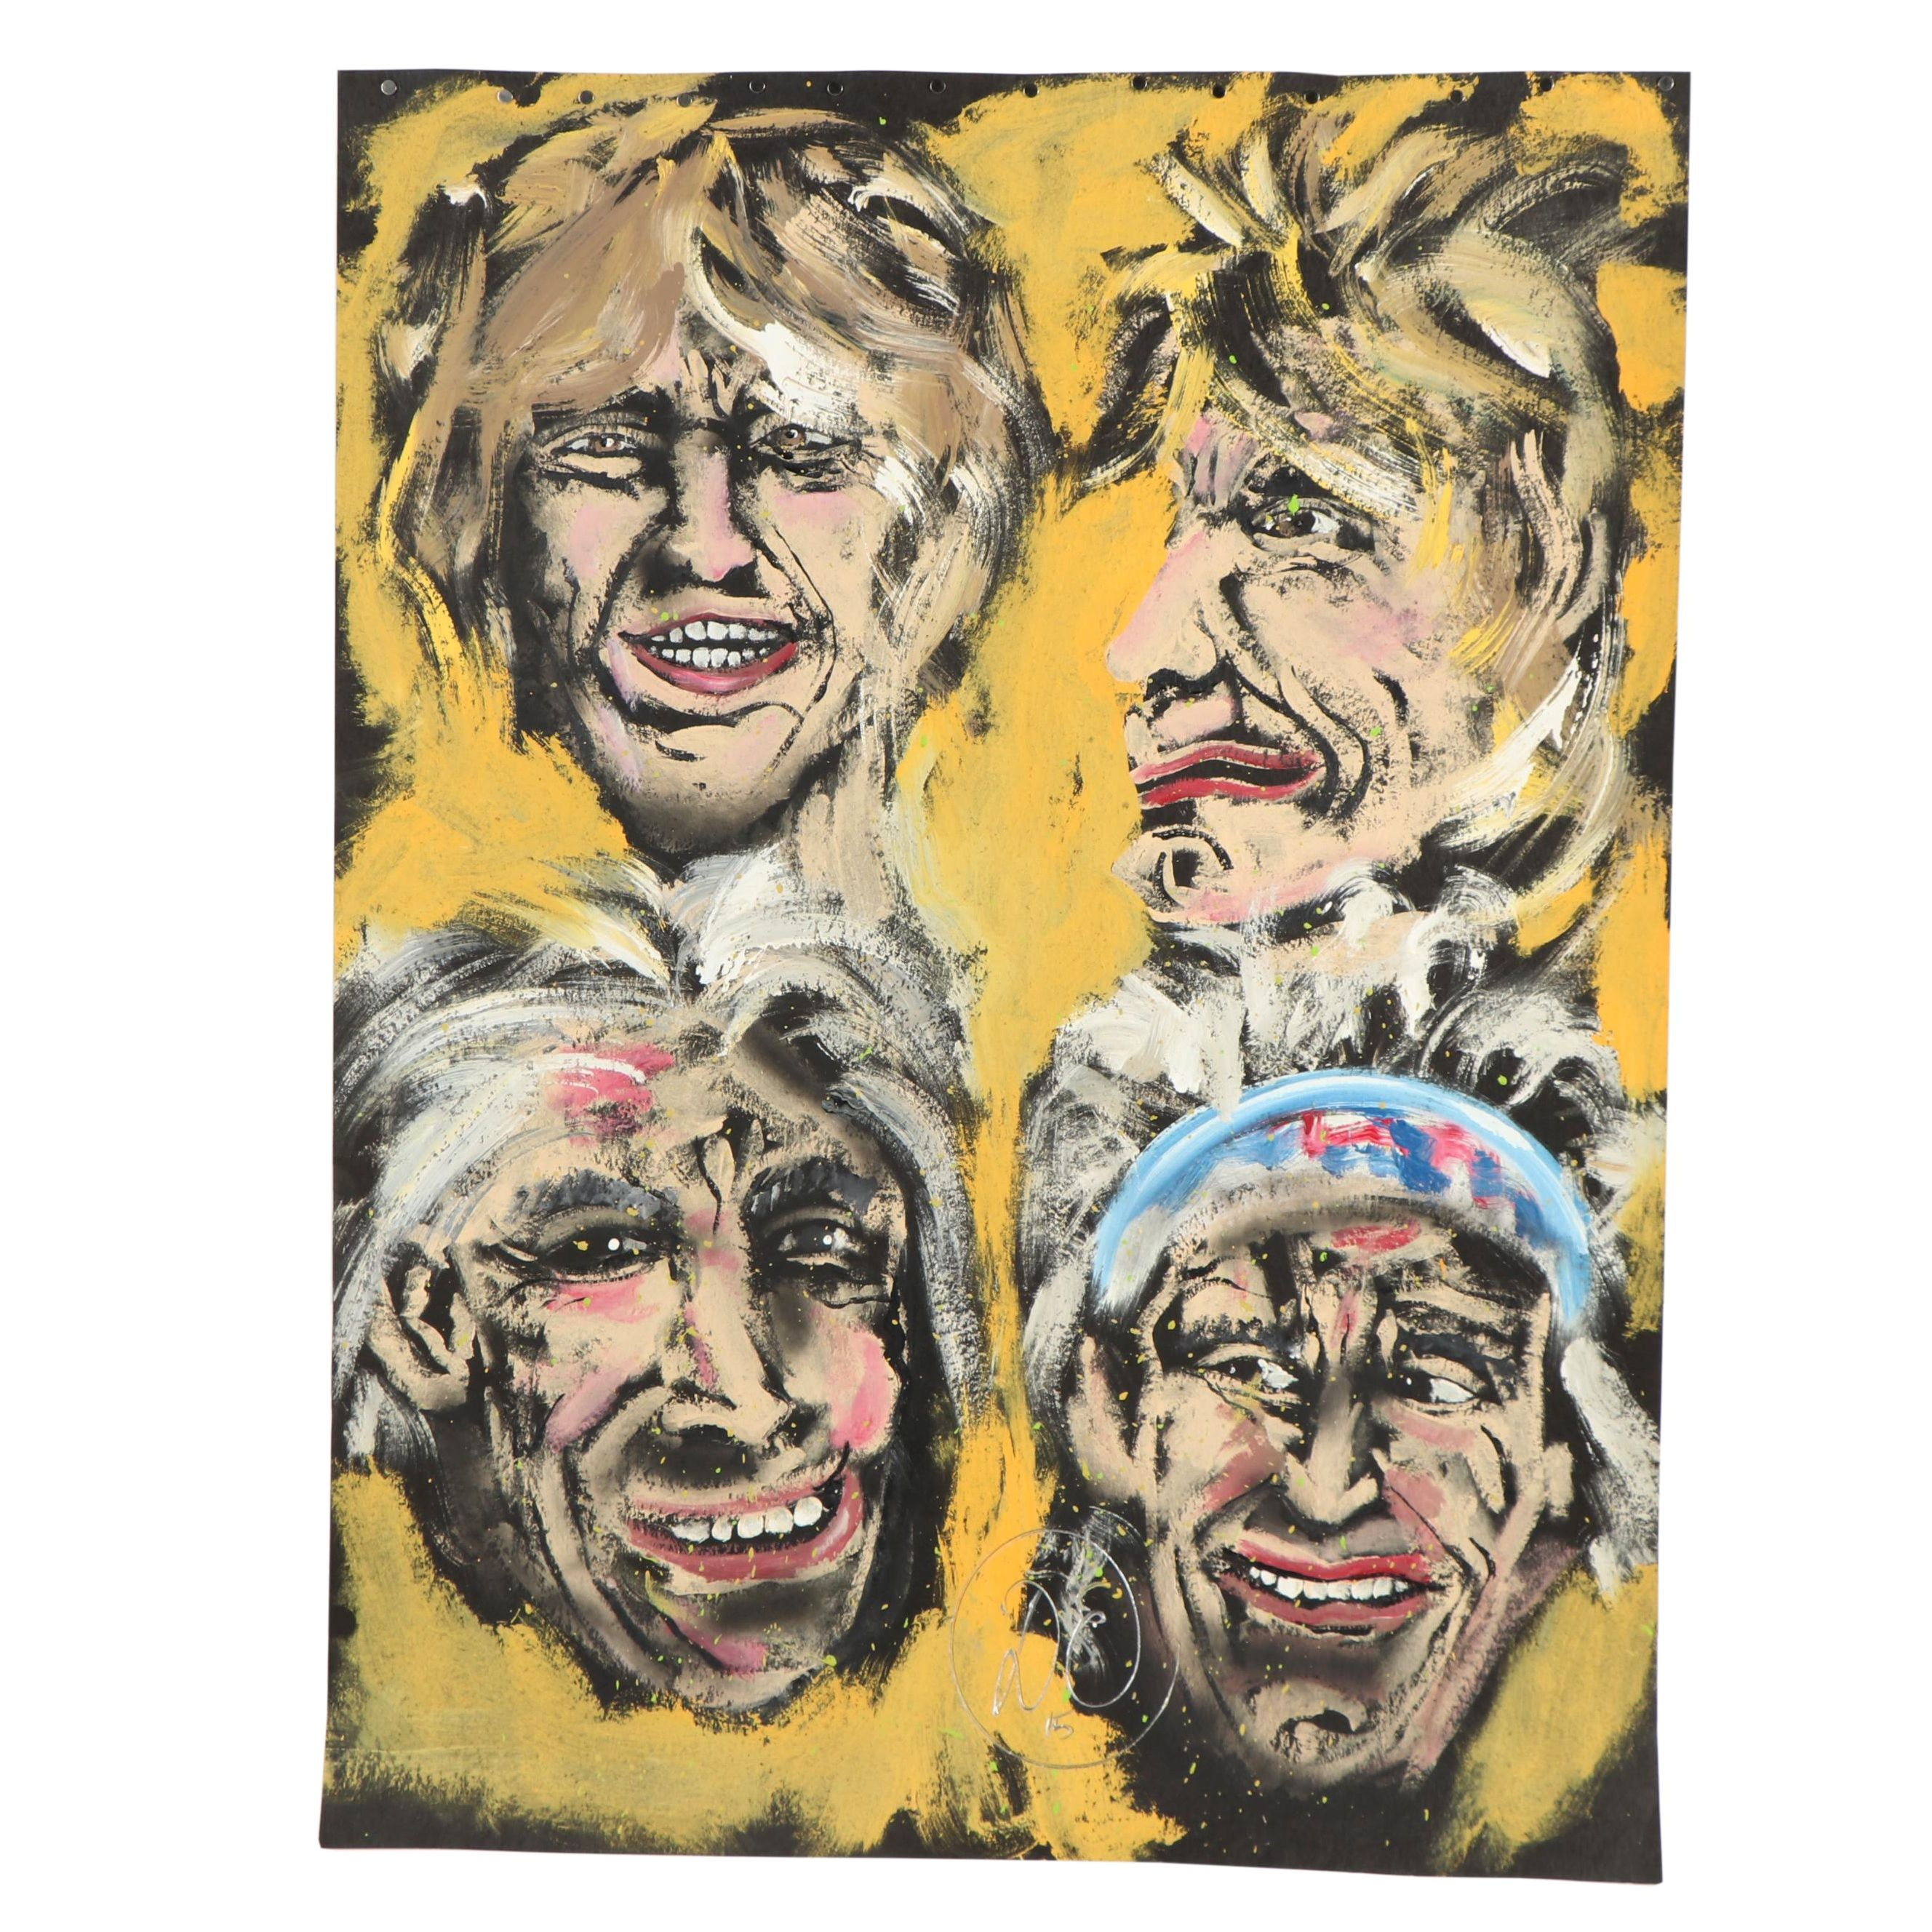 Acrylic Painting of The Rolling Stones